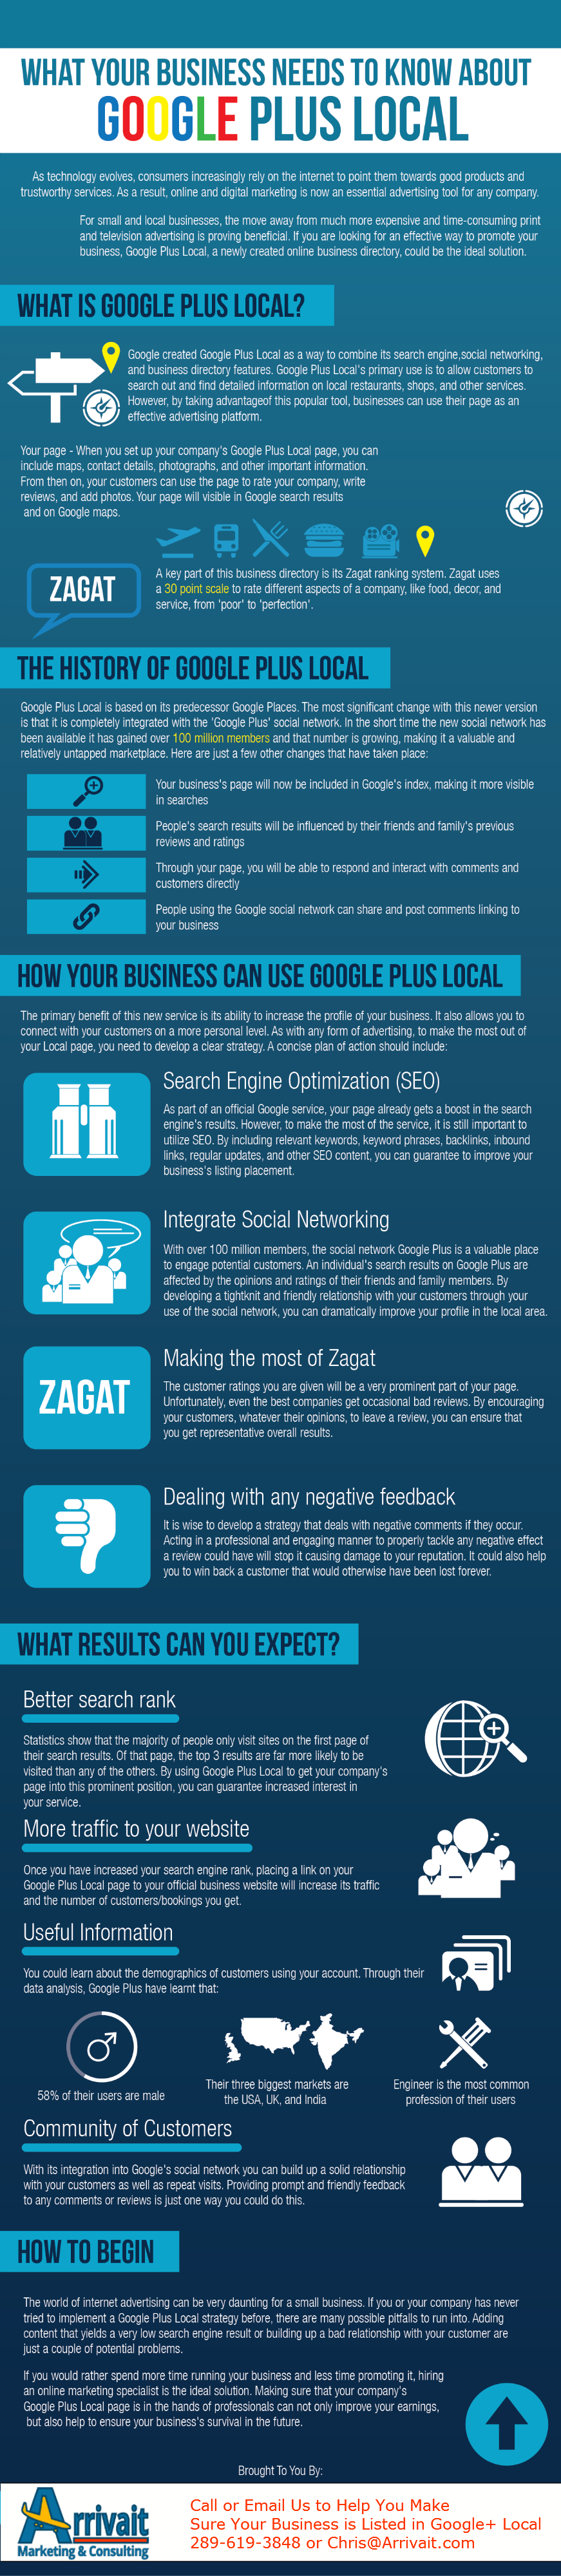 What Do You Need to Know About Google Plus Local - Infographic